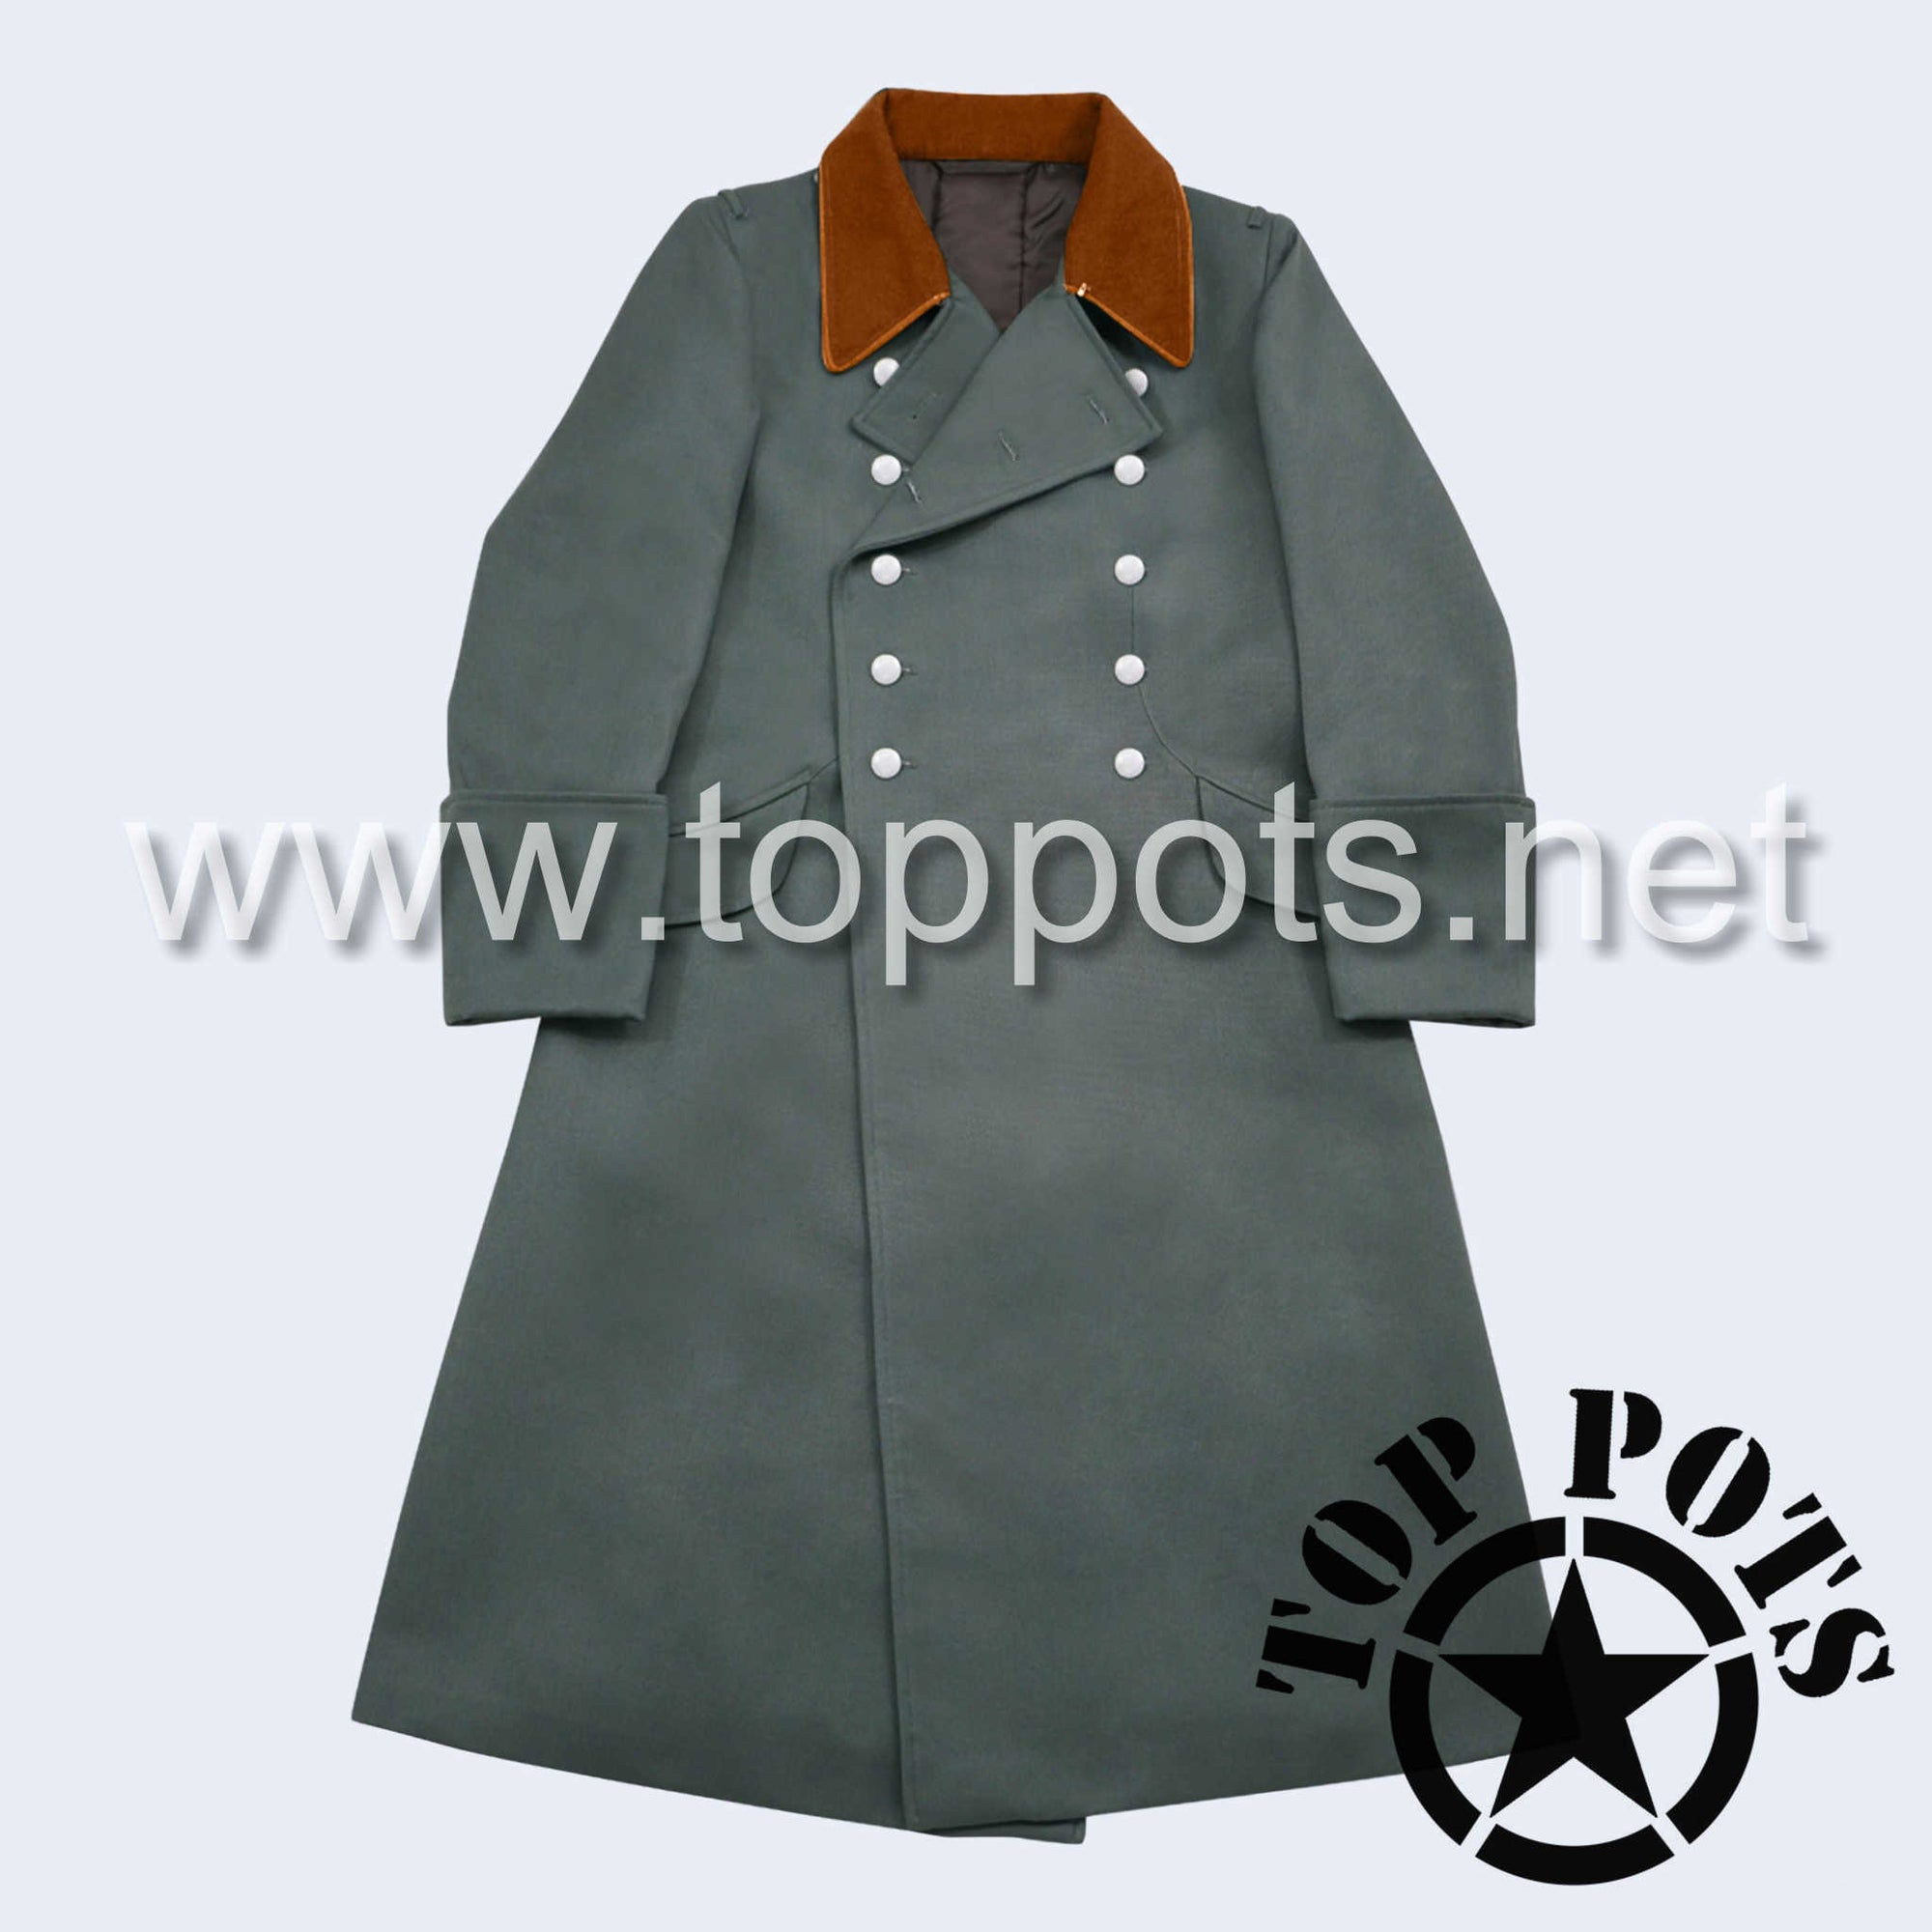 WWII German Army Waffen SS Police Uniform Overcoat Greatcoat Winter Jacket Field Grey Gabardine - Field Officer